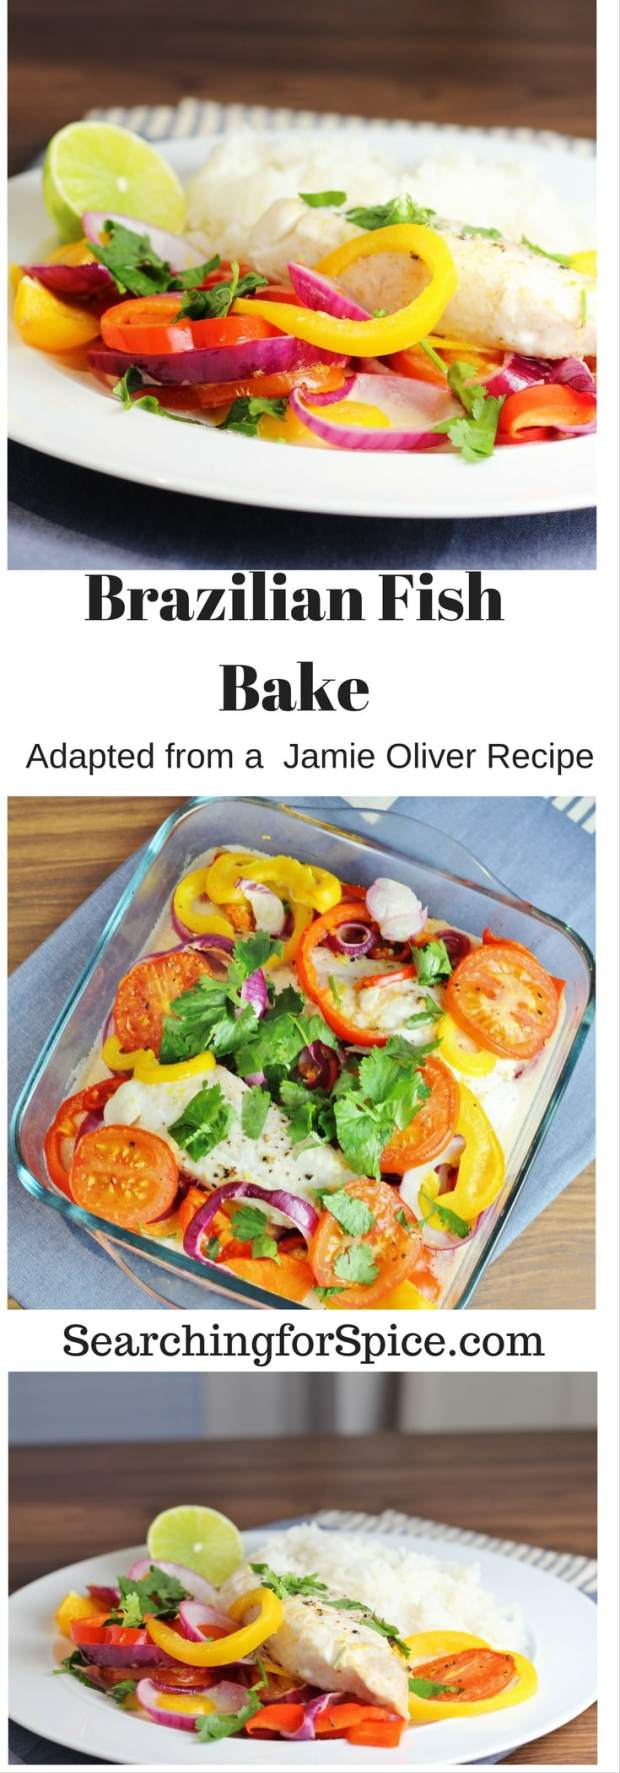 Brazilian Fish Bake - A Jamie Oliver Recipe